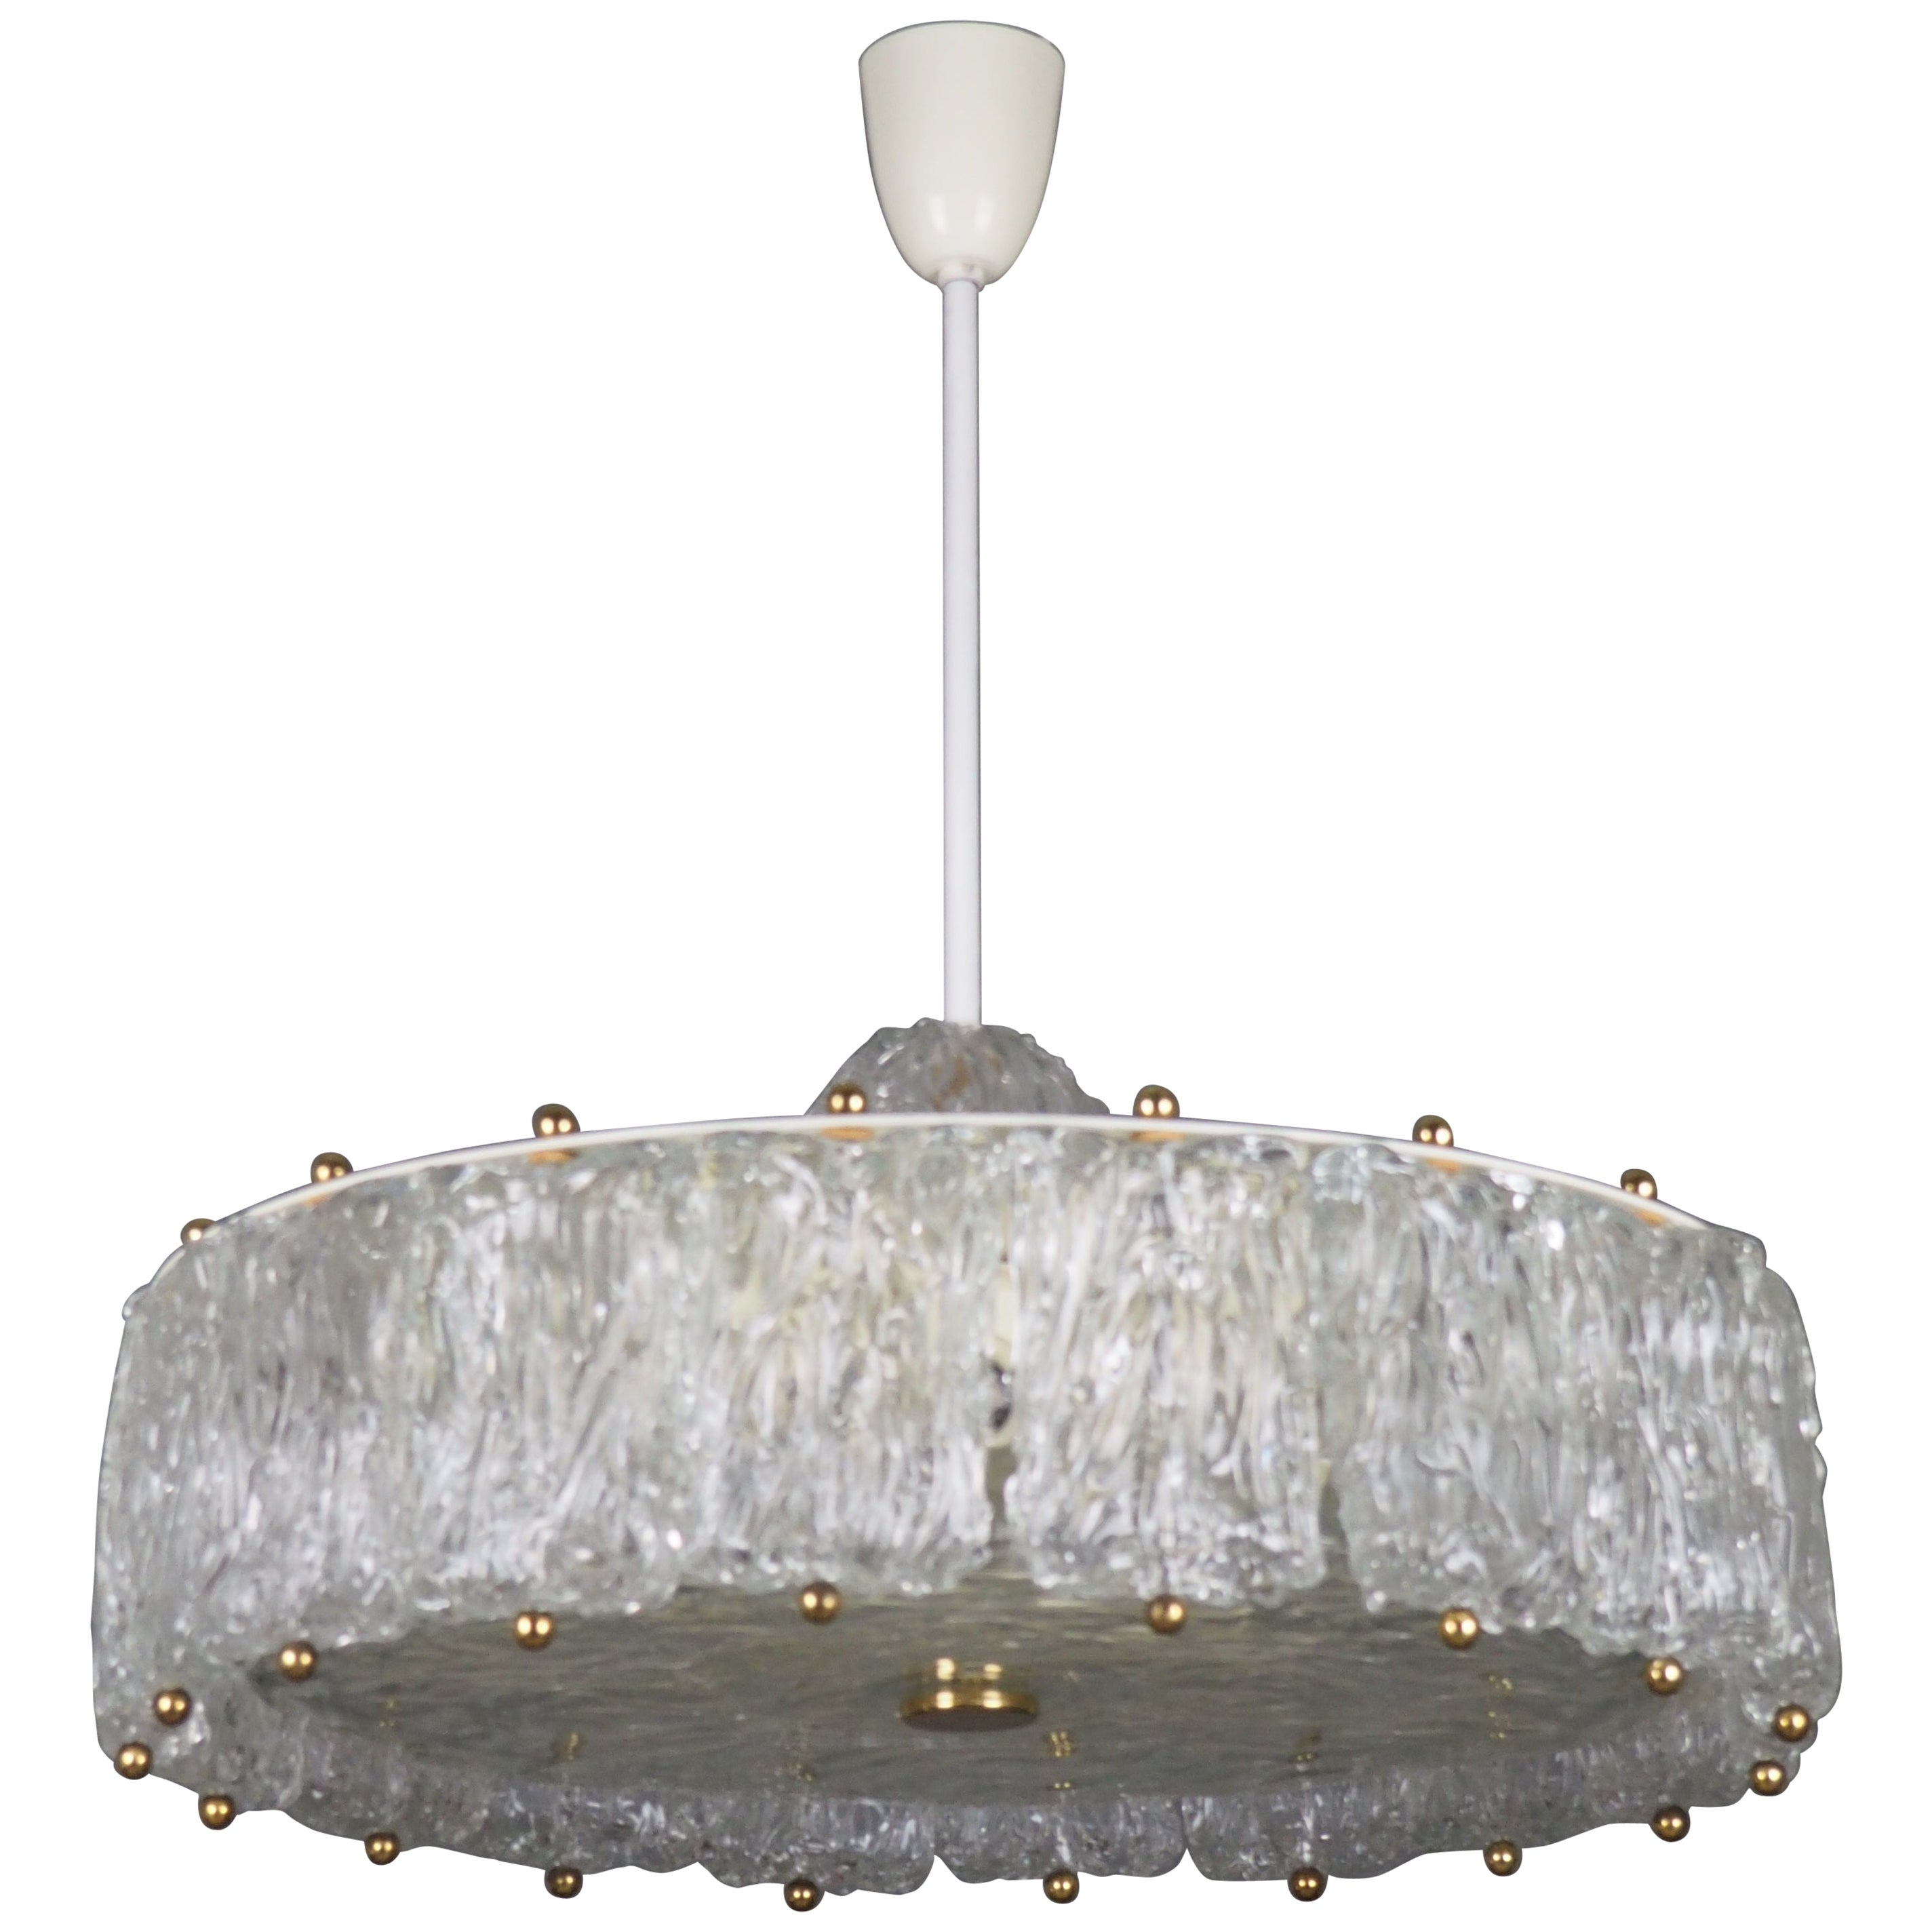 Large Glass Drum Chandelier by Aureliano Toso, circa 1960s